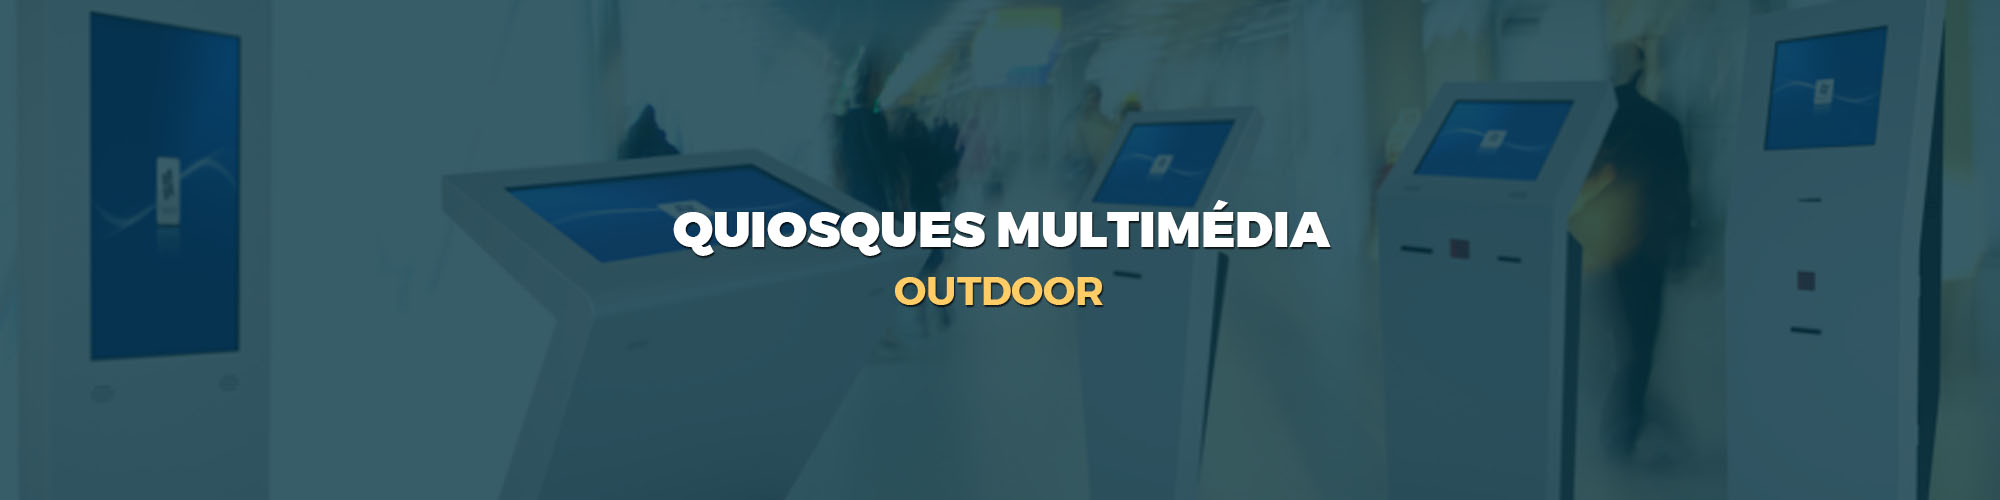 quiosque multimedia - outdoor